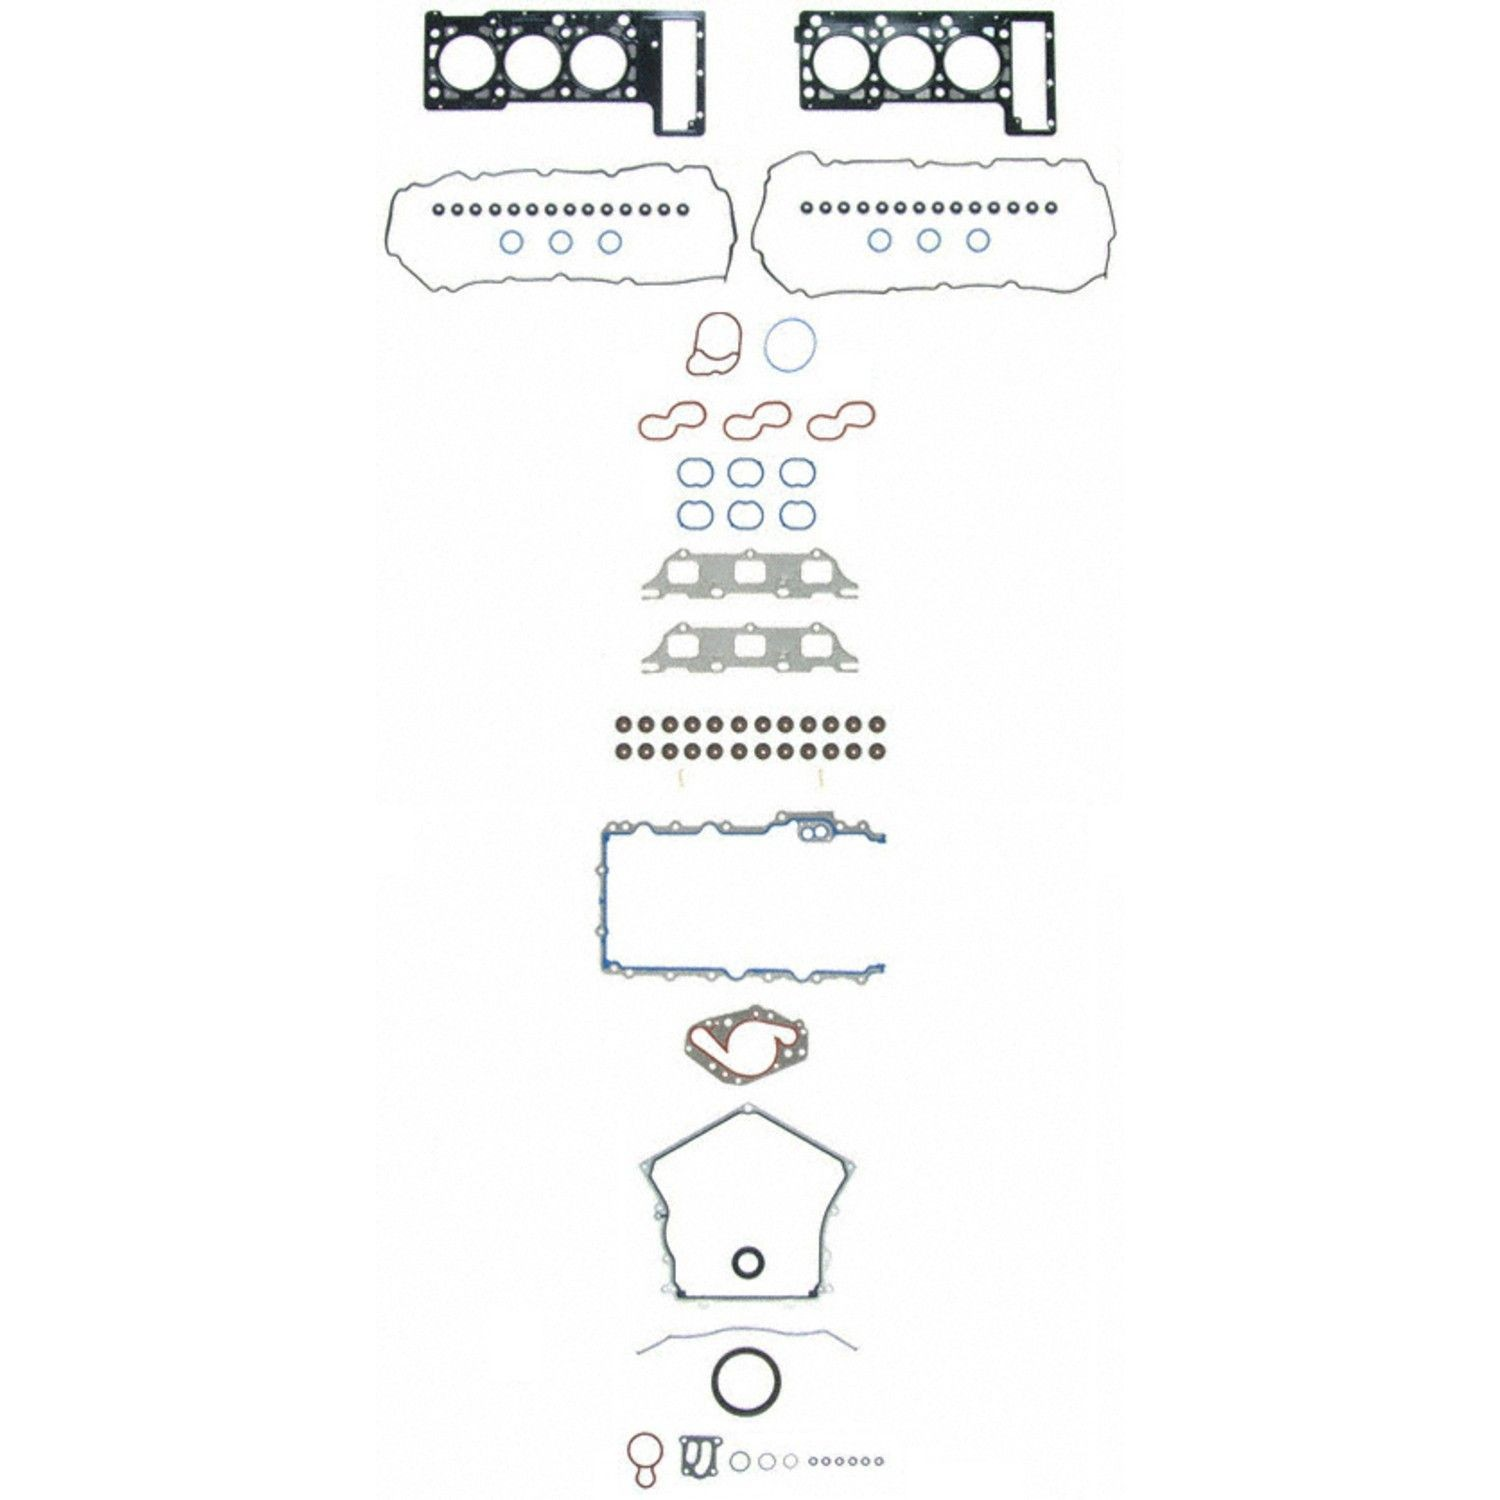 2006 Dodge Charger Engine Diagram 1934 Wiring Diagrams Gasket Set Replacement Felpro Sealed Power Of